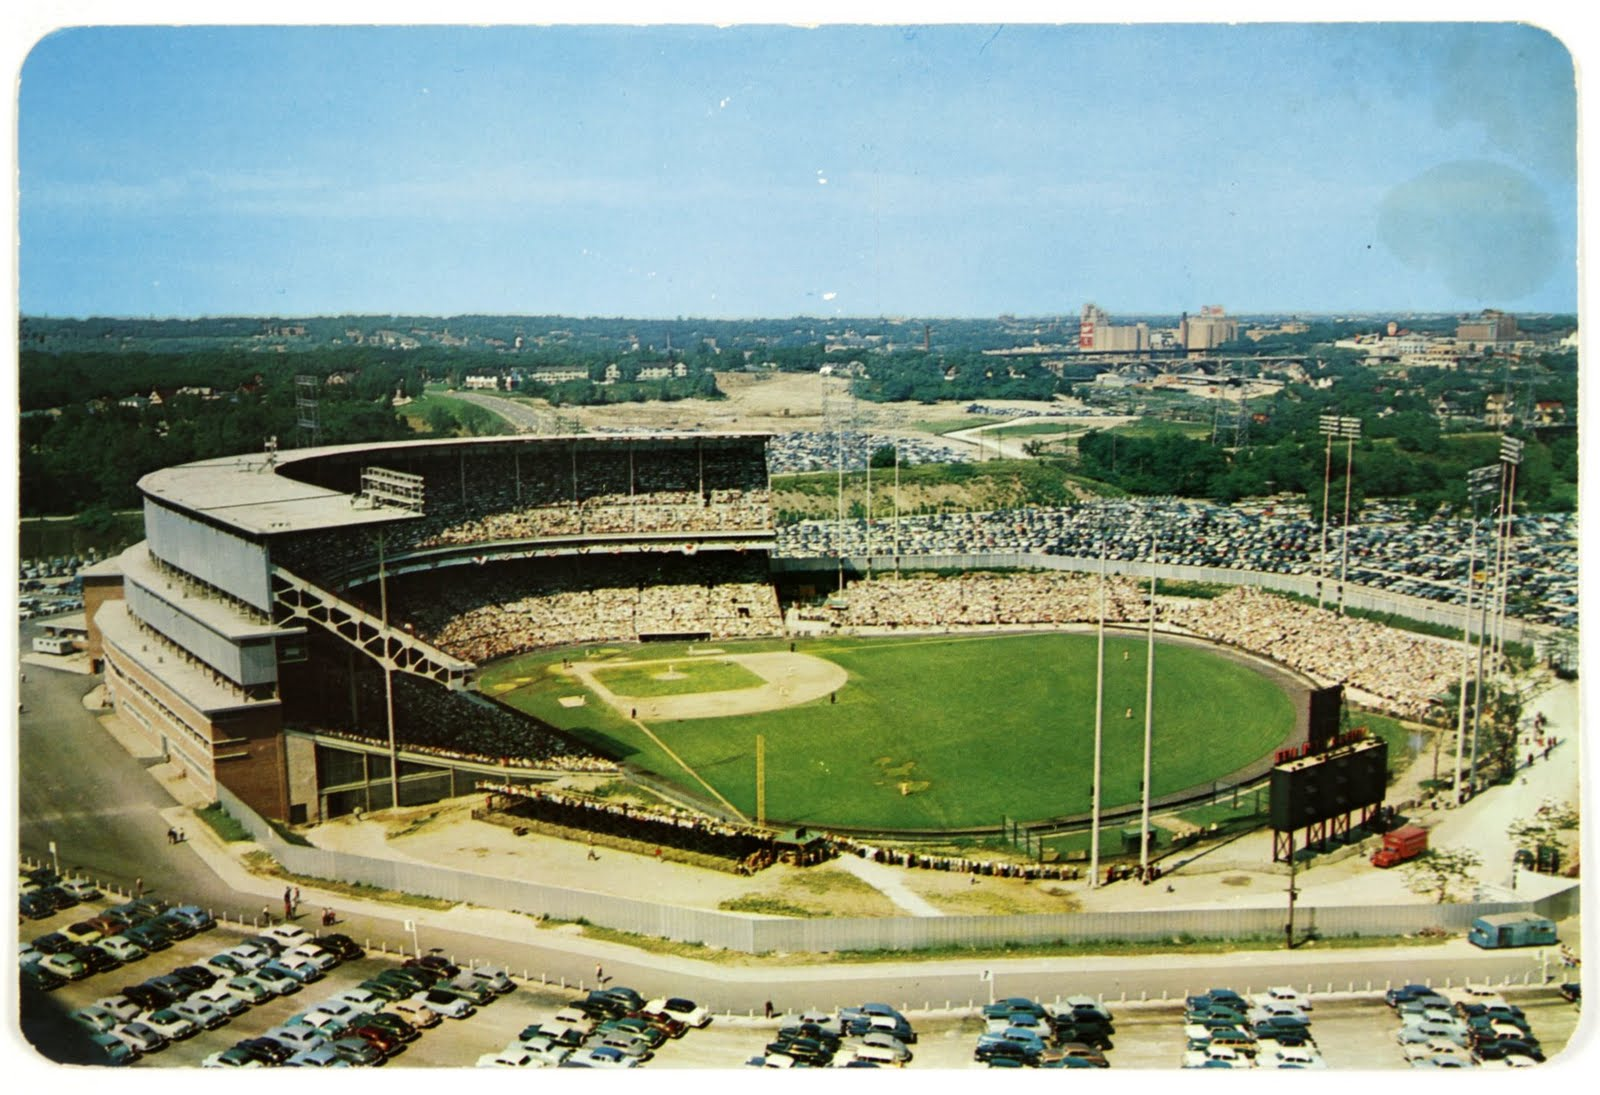 Paris LF: Milwaukee County Stadium